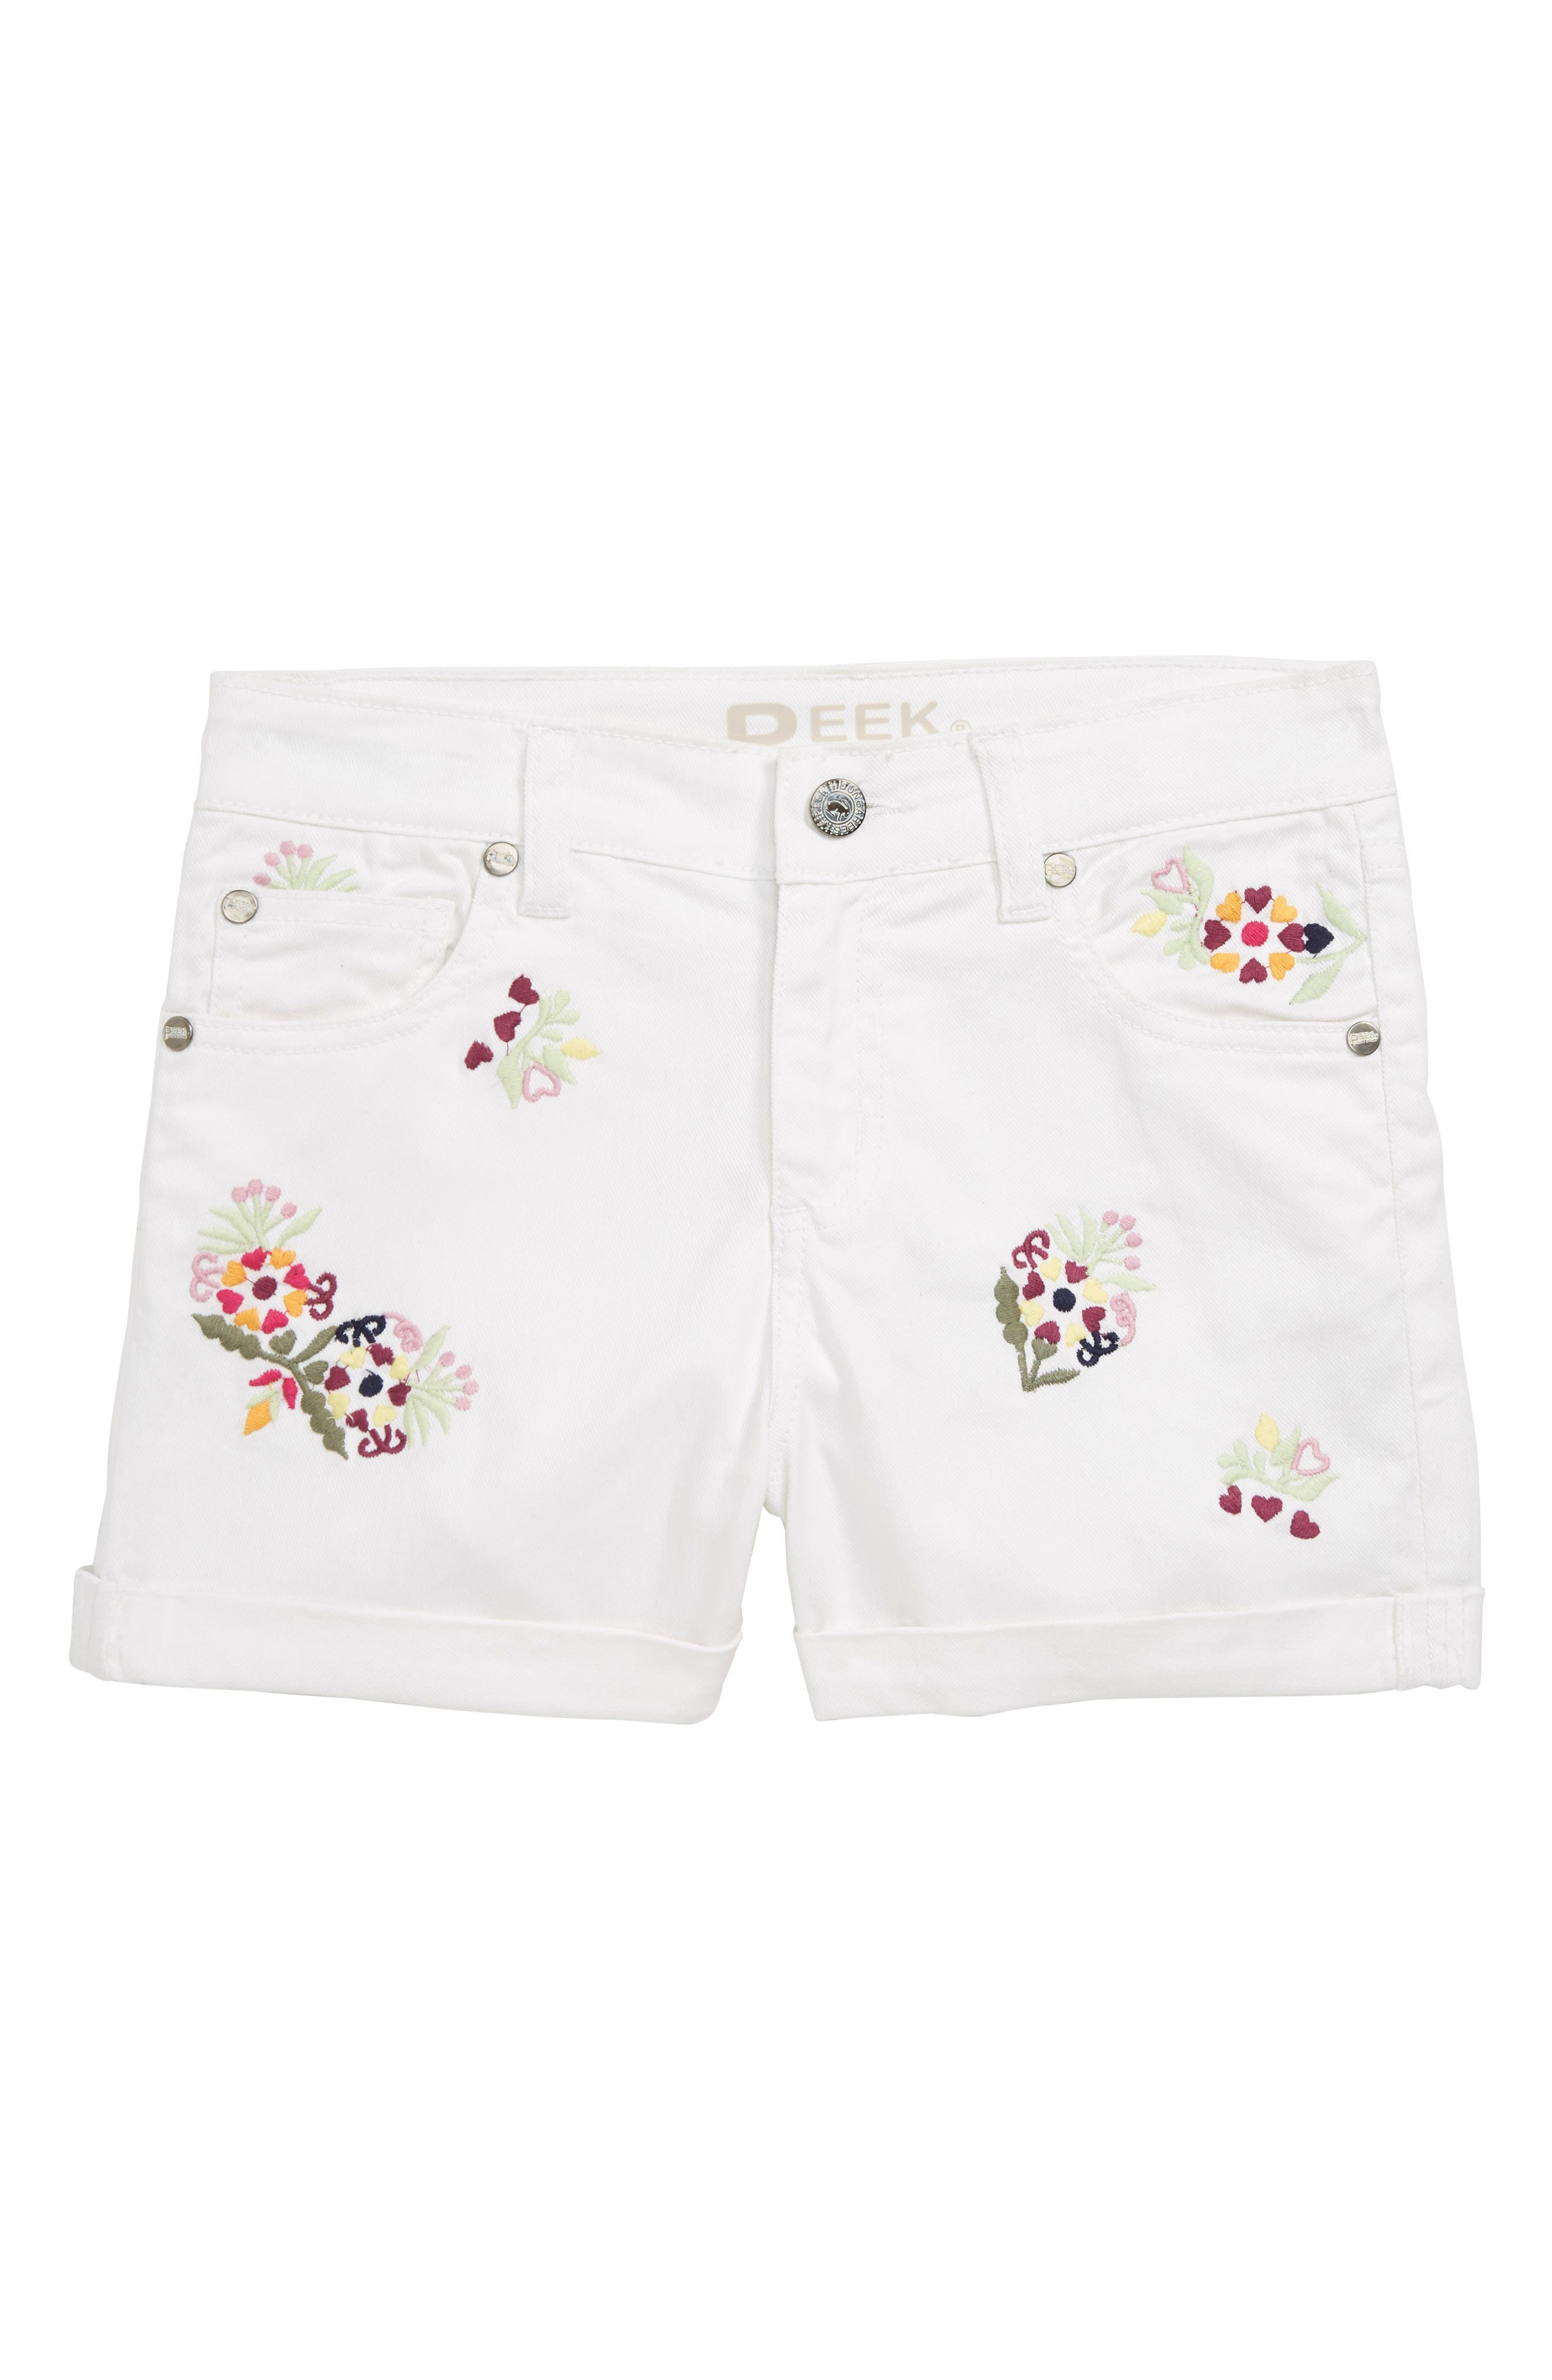 Griffin Embroidered Cuffed Denim Shorts,                             Main thumbnail 1, color,                             100